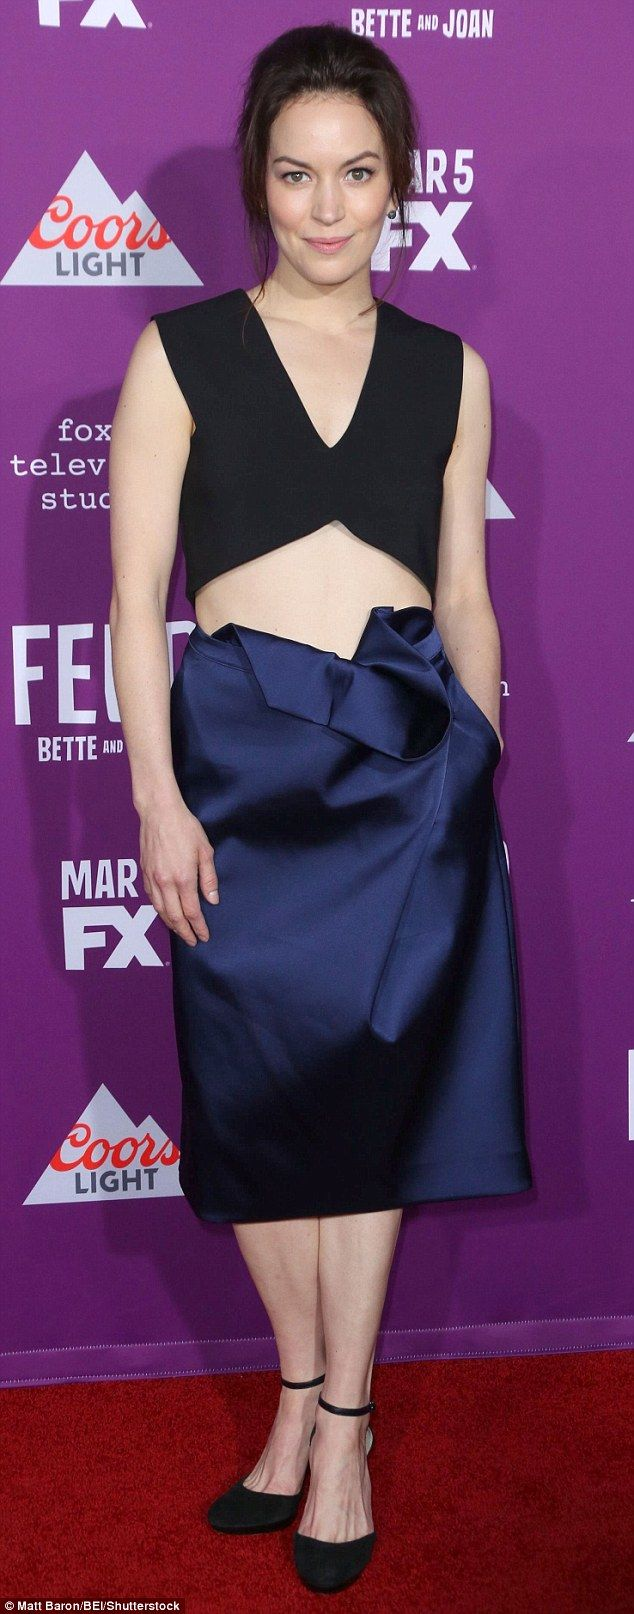 Interesting outfit: Actress Britt Lower dared to bare in a tiny black sleeveless crop top ...